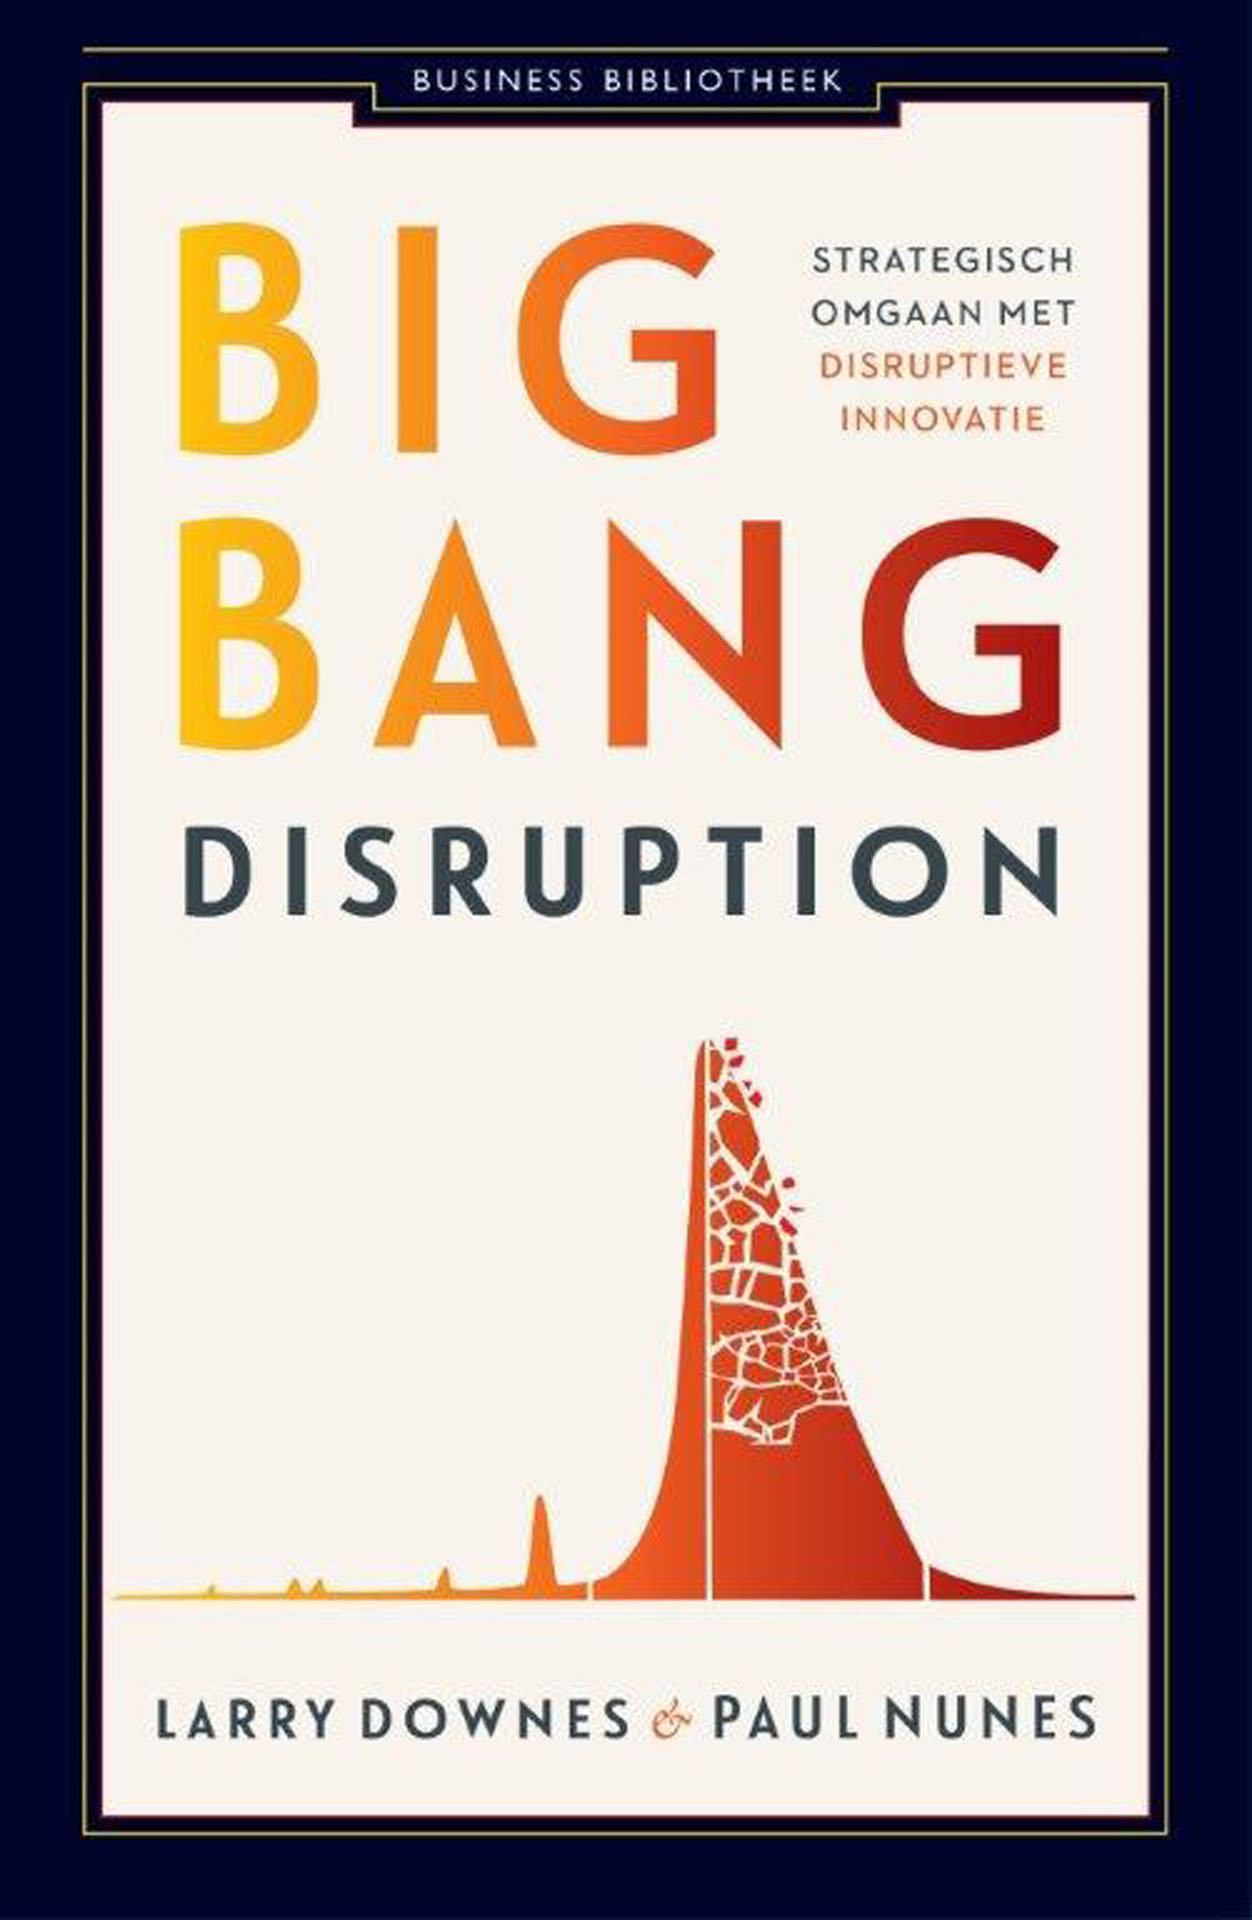 Big bang disruption - Larry Downes and Paul Nunes